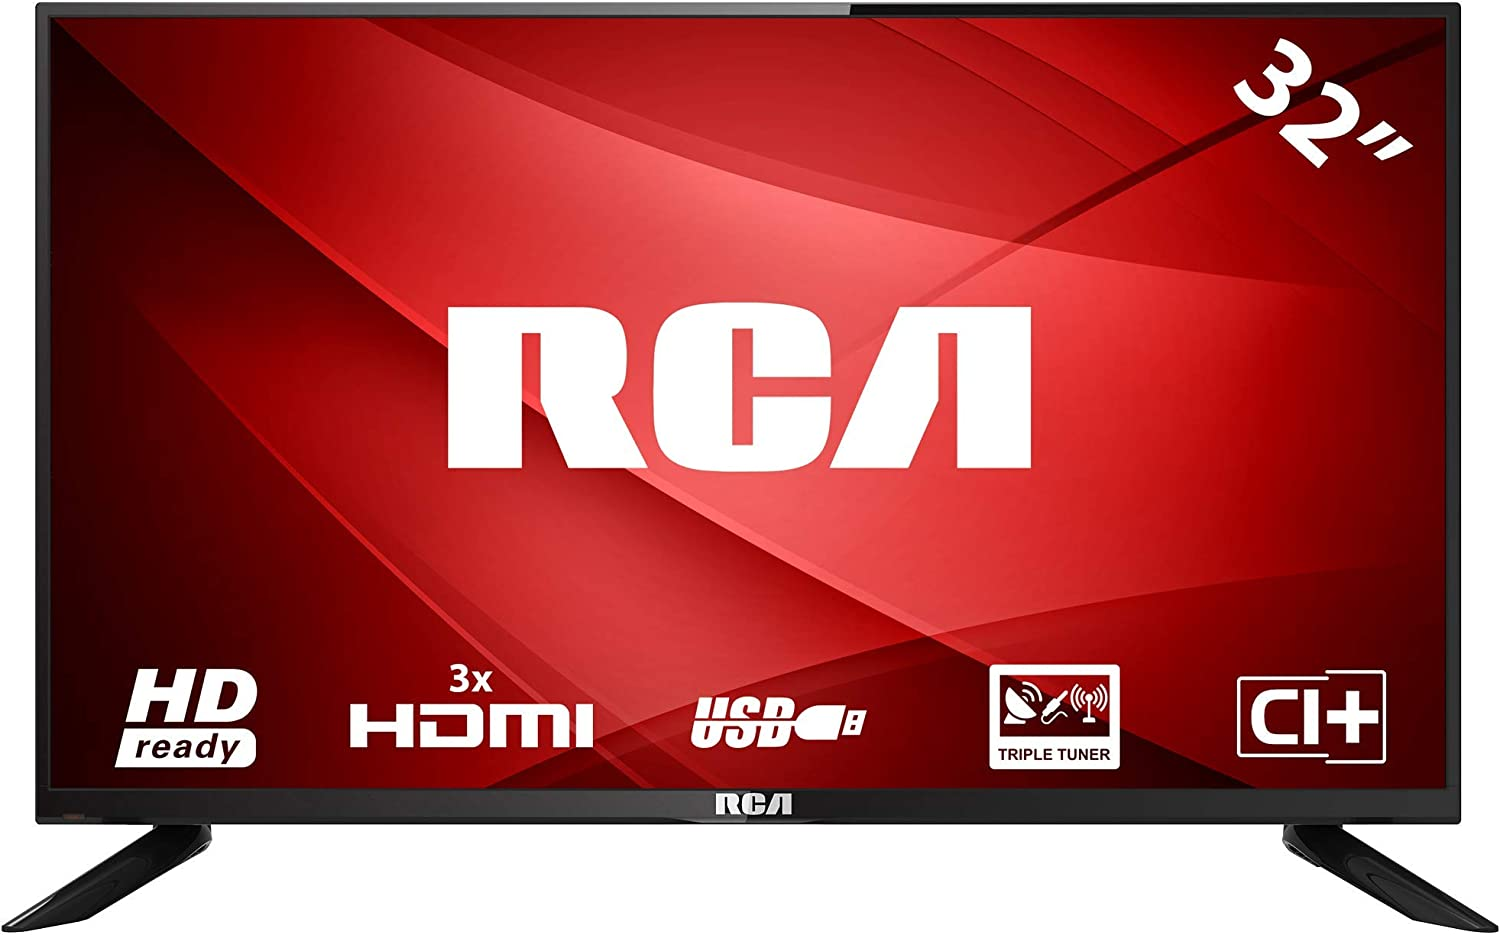 RCA RB32H1 LED TV (32 Pulgadas HD TV), Ci+, HDMI+USB, Triple Tuner, 60Hz, Mediaplayer: Amazon.es: Electrónica